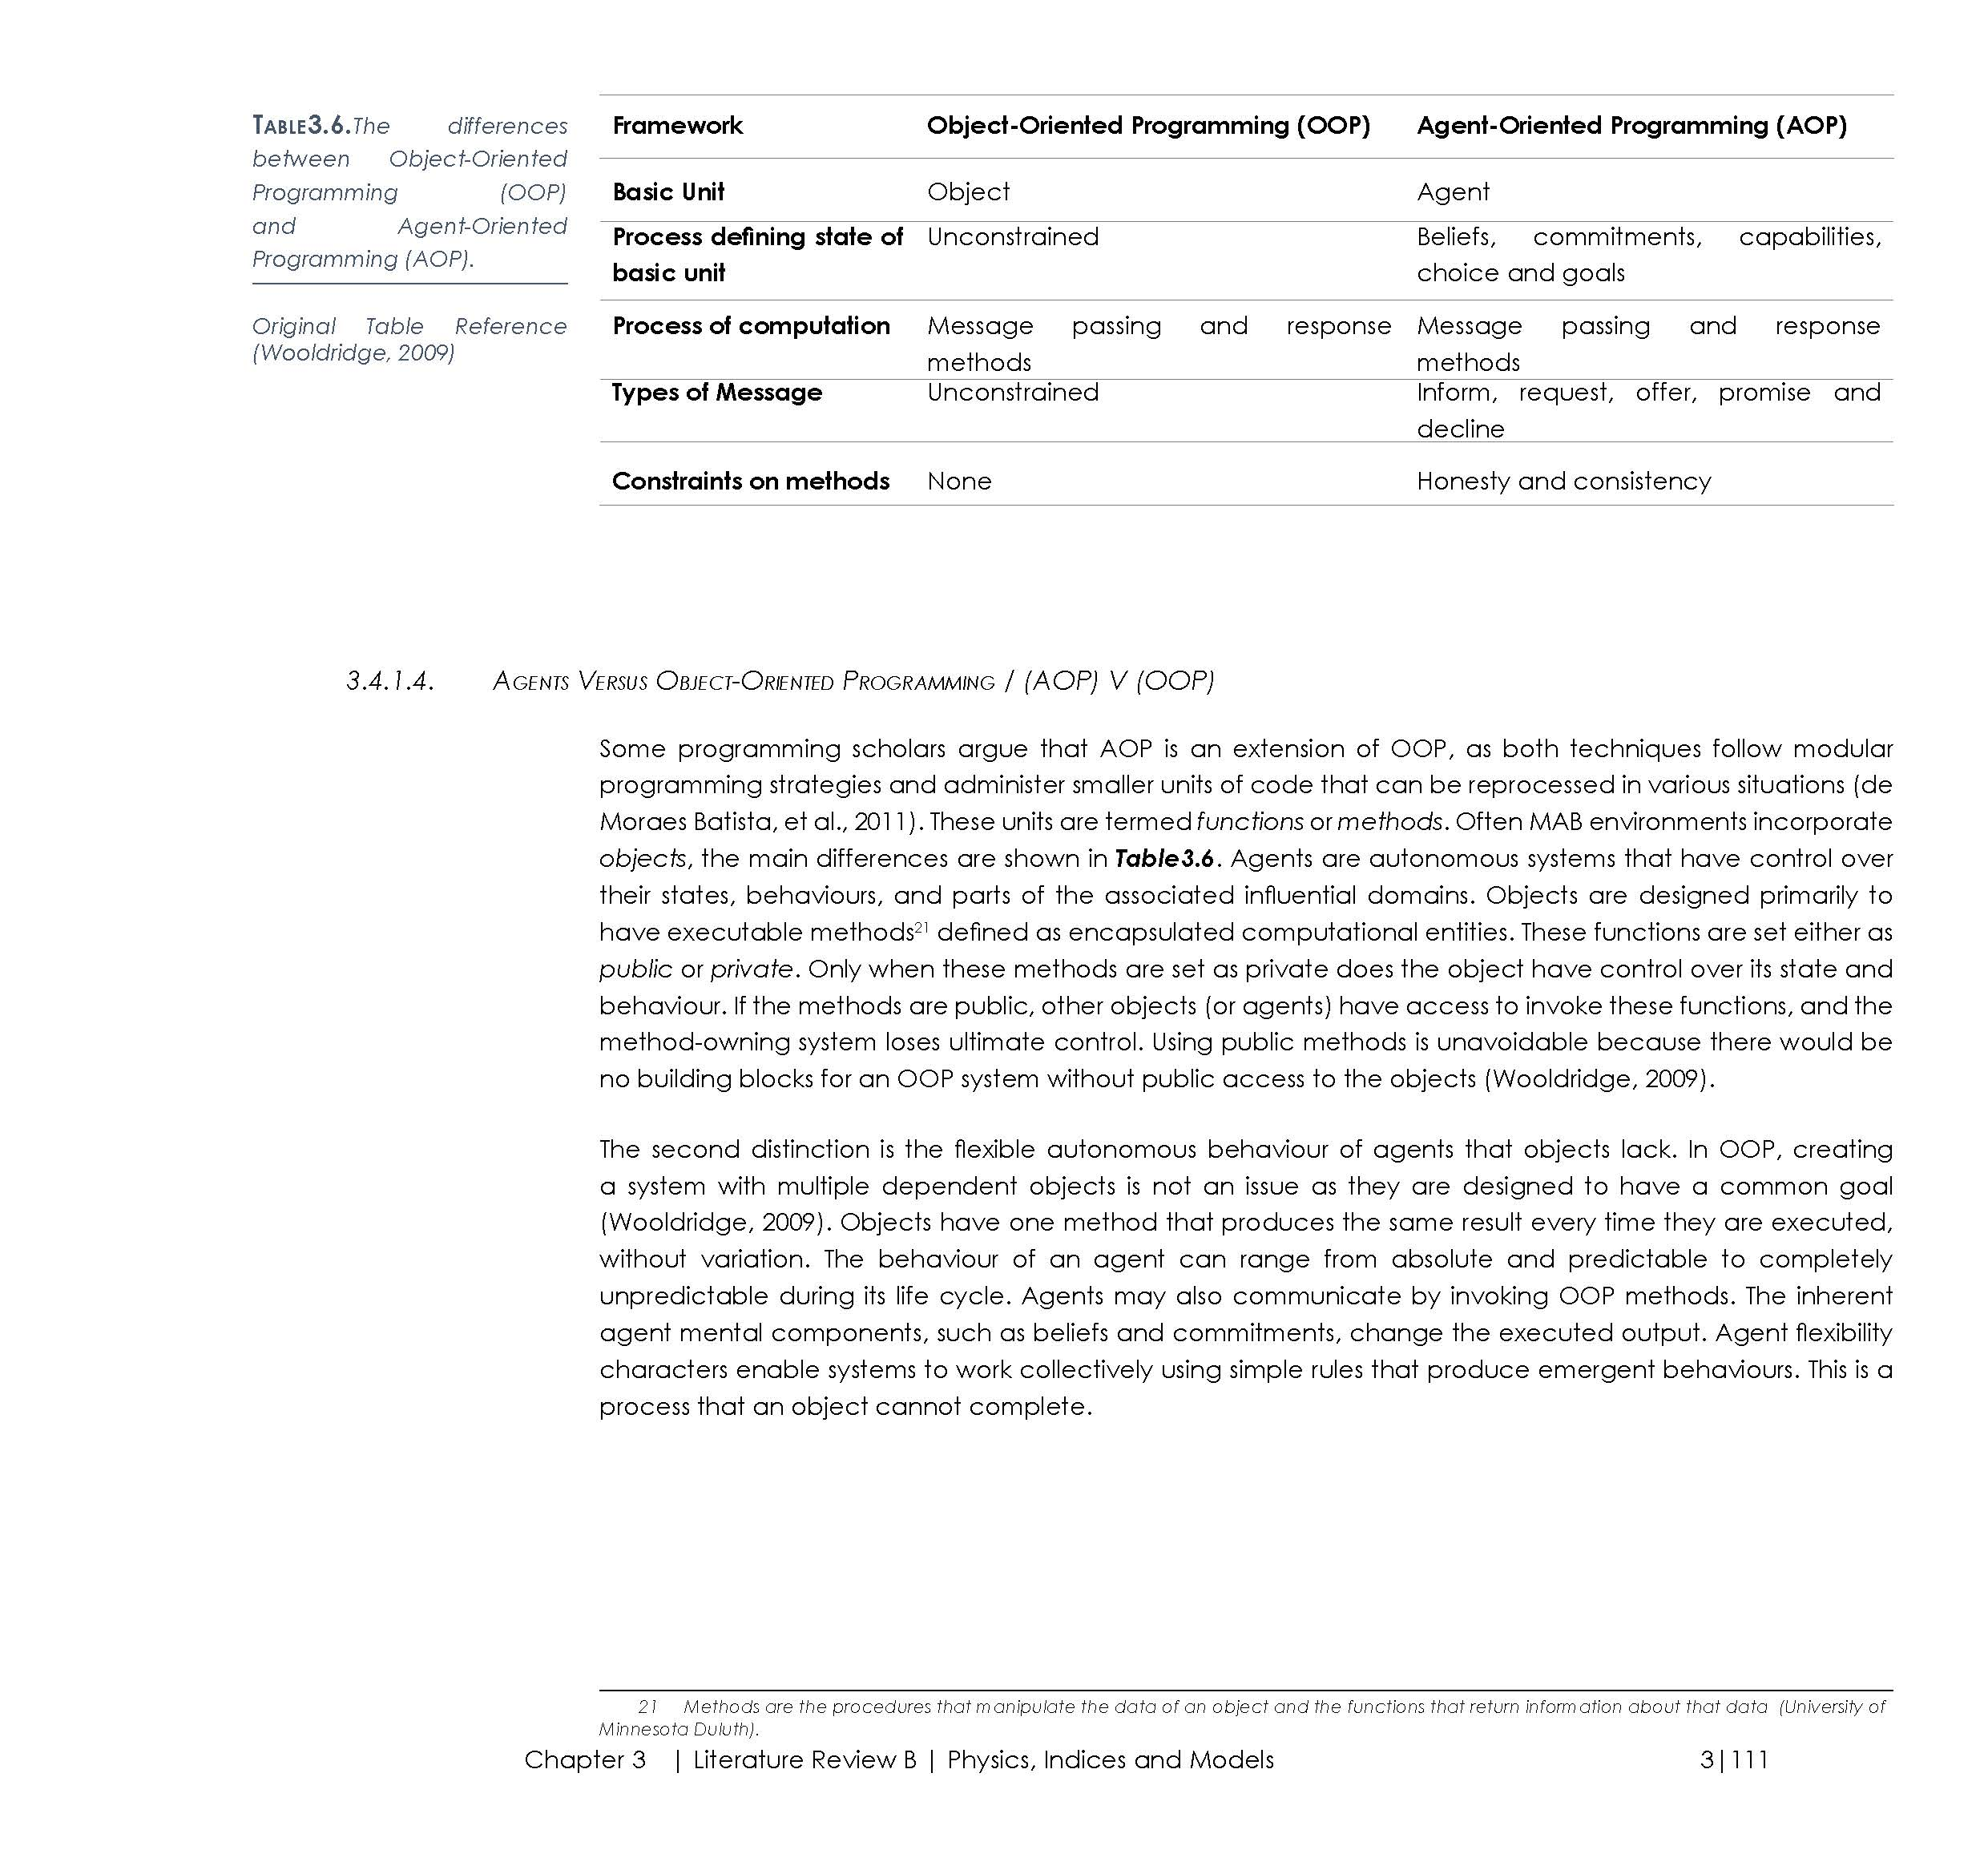 16.03.03_Thesis_01_Interactive_Page_147.jpg